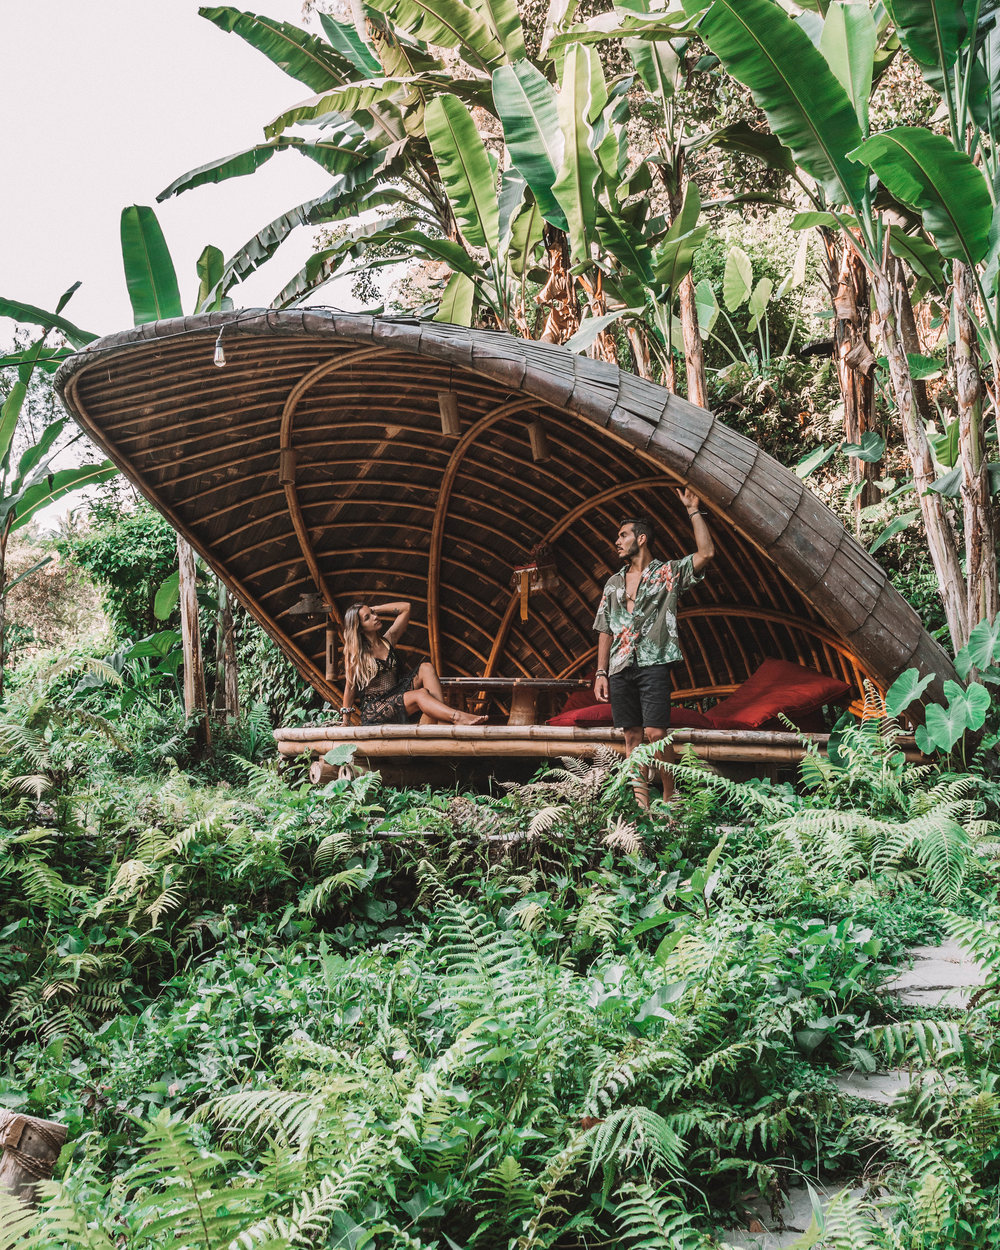 Sunset romance at bambu indah jungle tent cocoon house jungle vibes best hotels bali ubud indonesia sustainable ecological